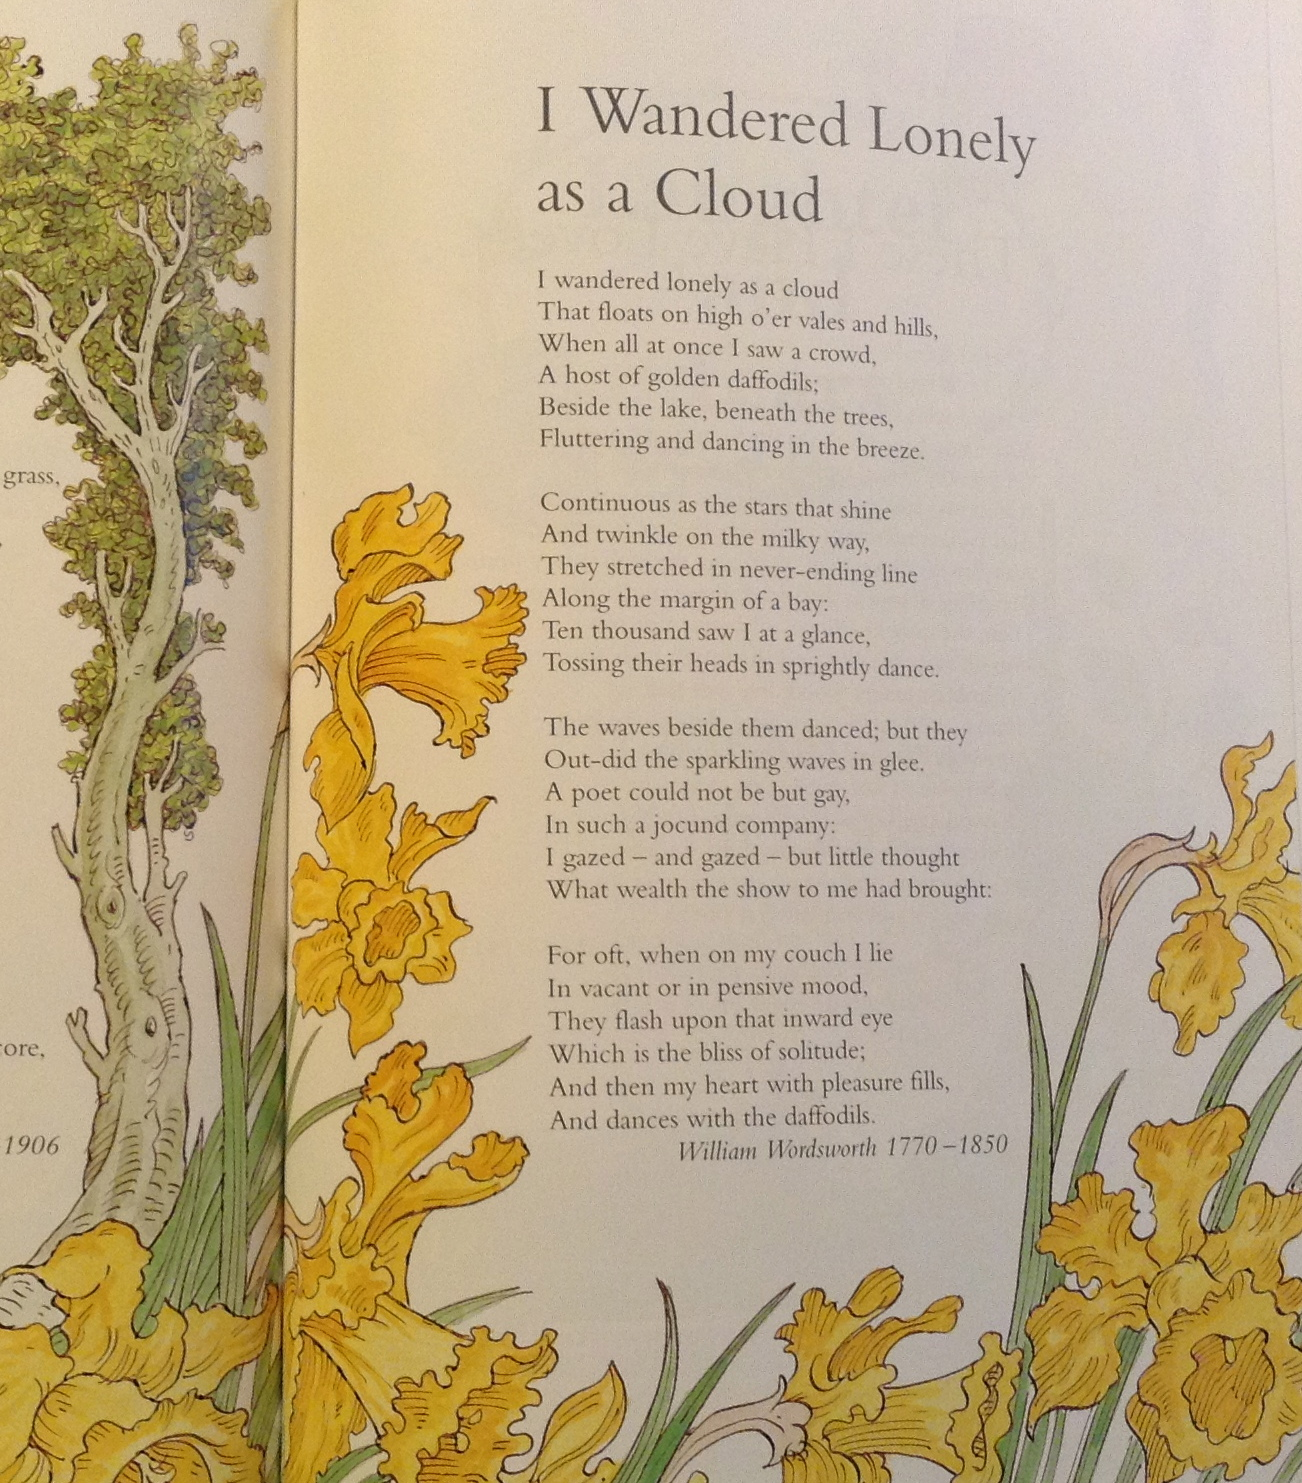 analysis of the daffodles Comments & analysis: i wandered lonely as a cloud / that floats on high o'er vales and hills.